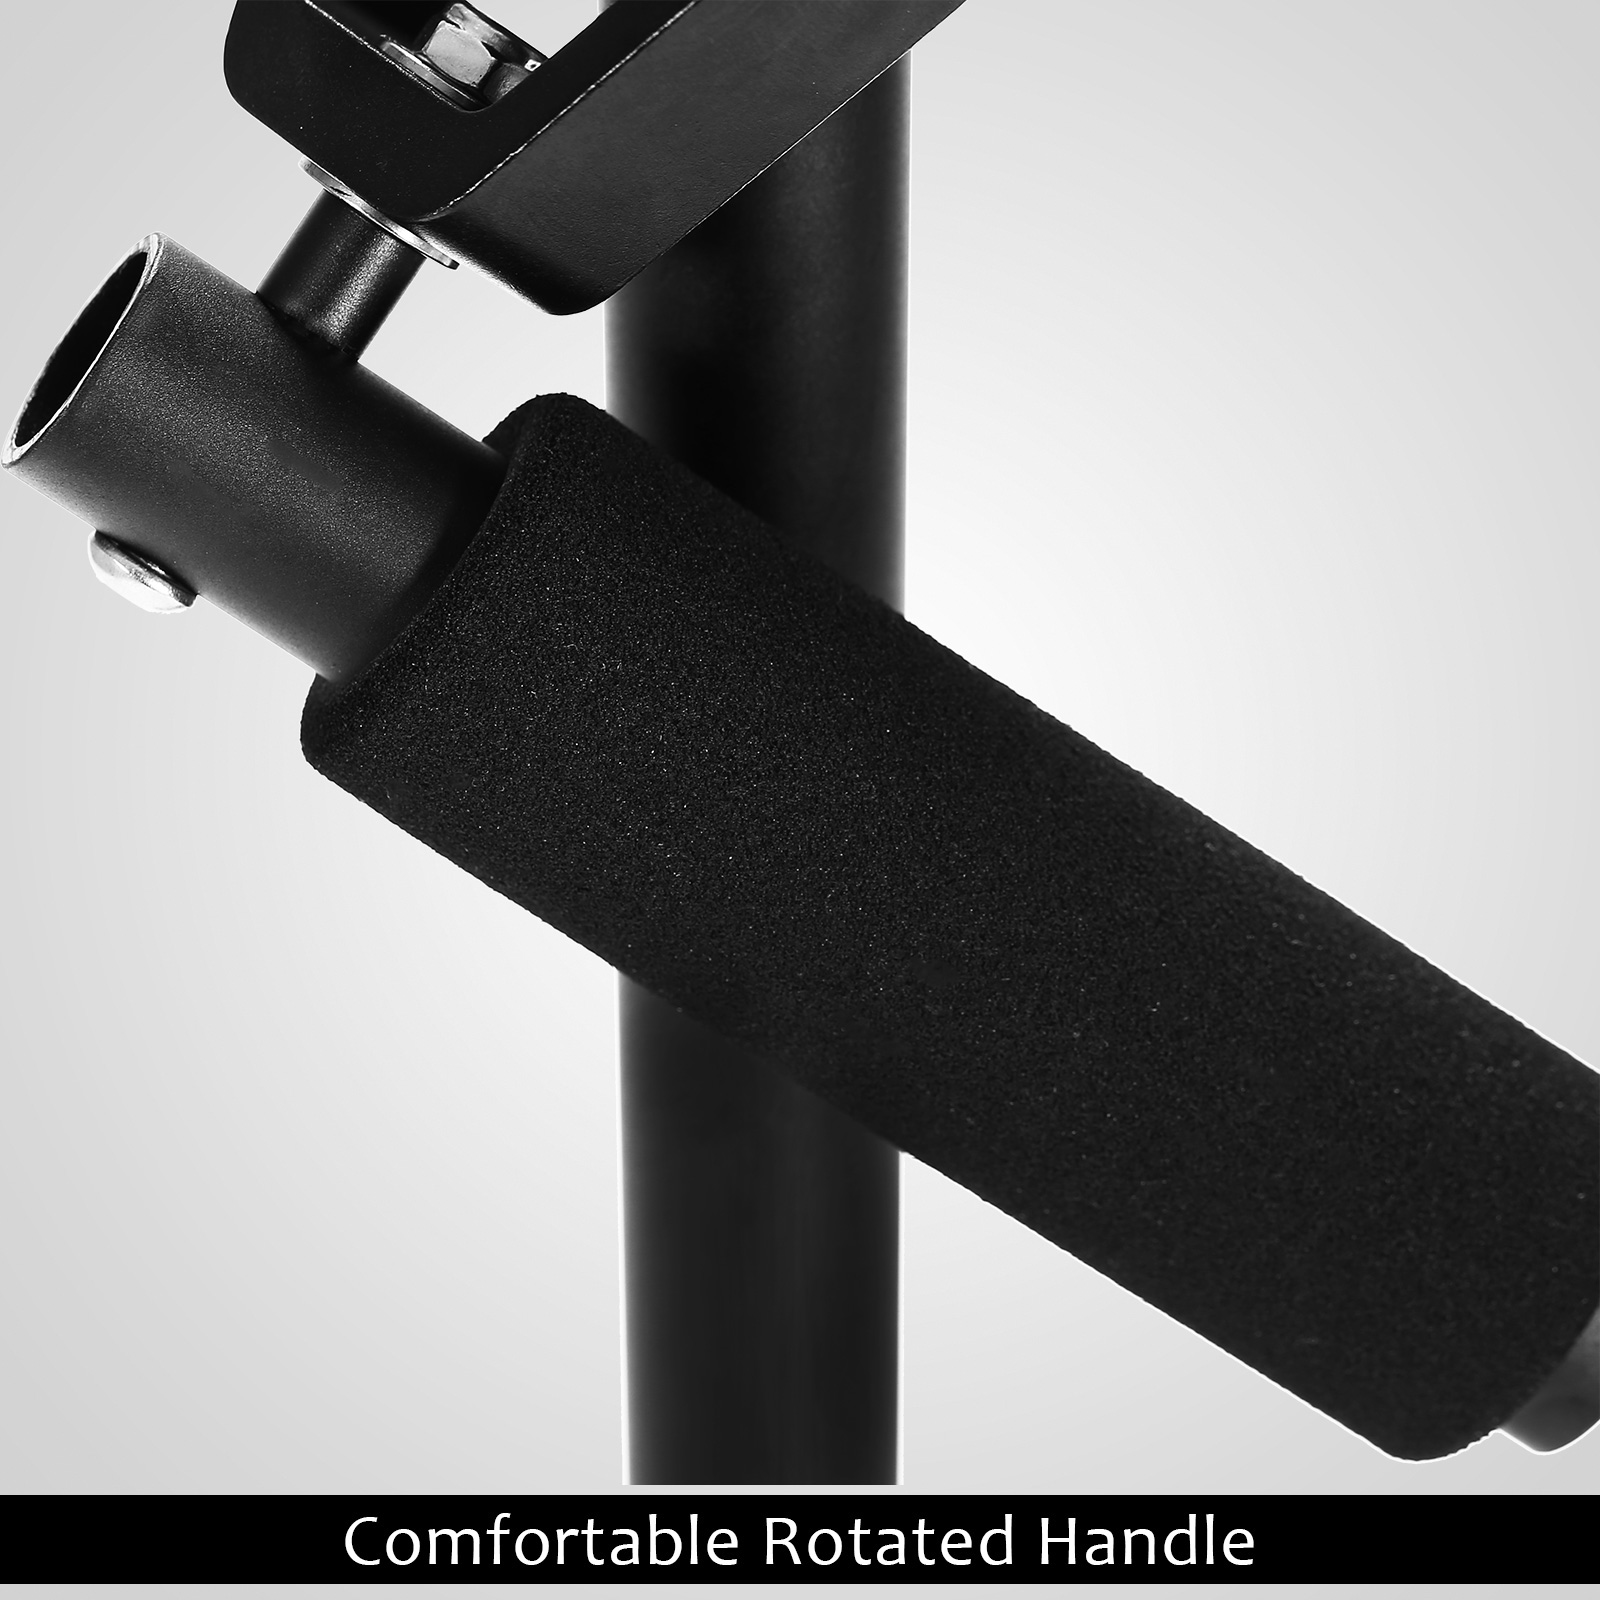 S60T-S60N-Handheld-Steady-Stabilizer-360-For-DSLR-Canon-Camera thumbnail 20